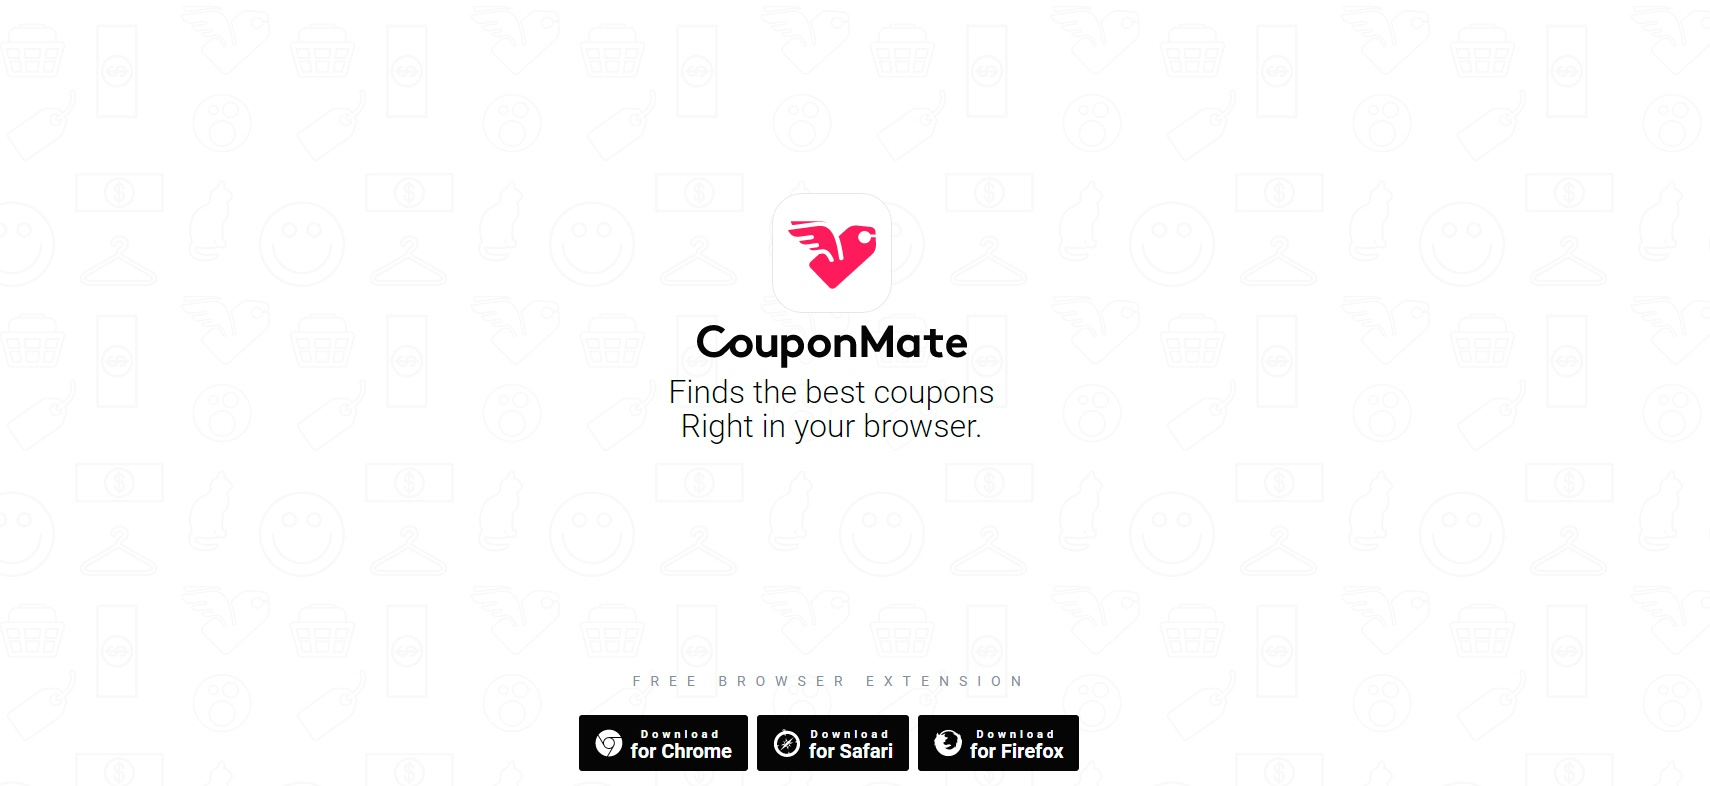 CouponMate